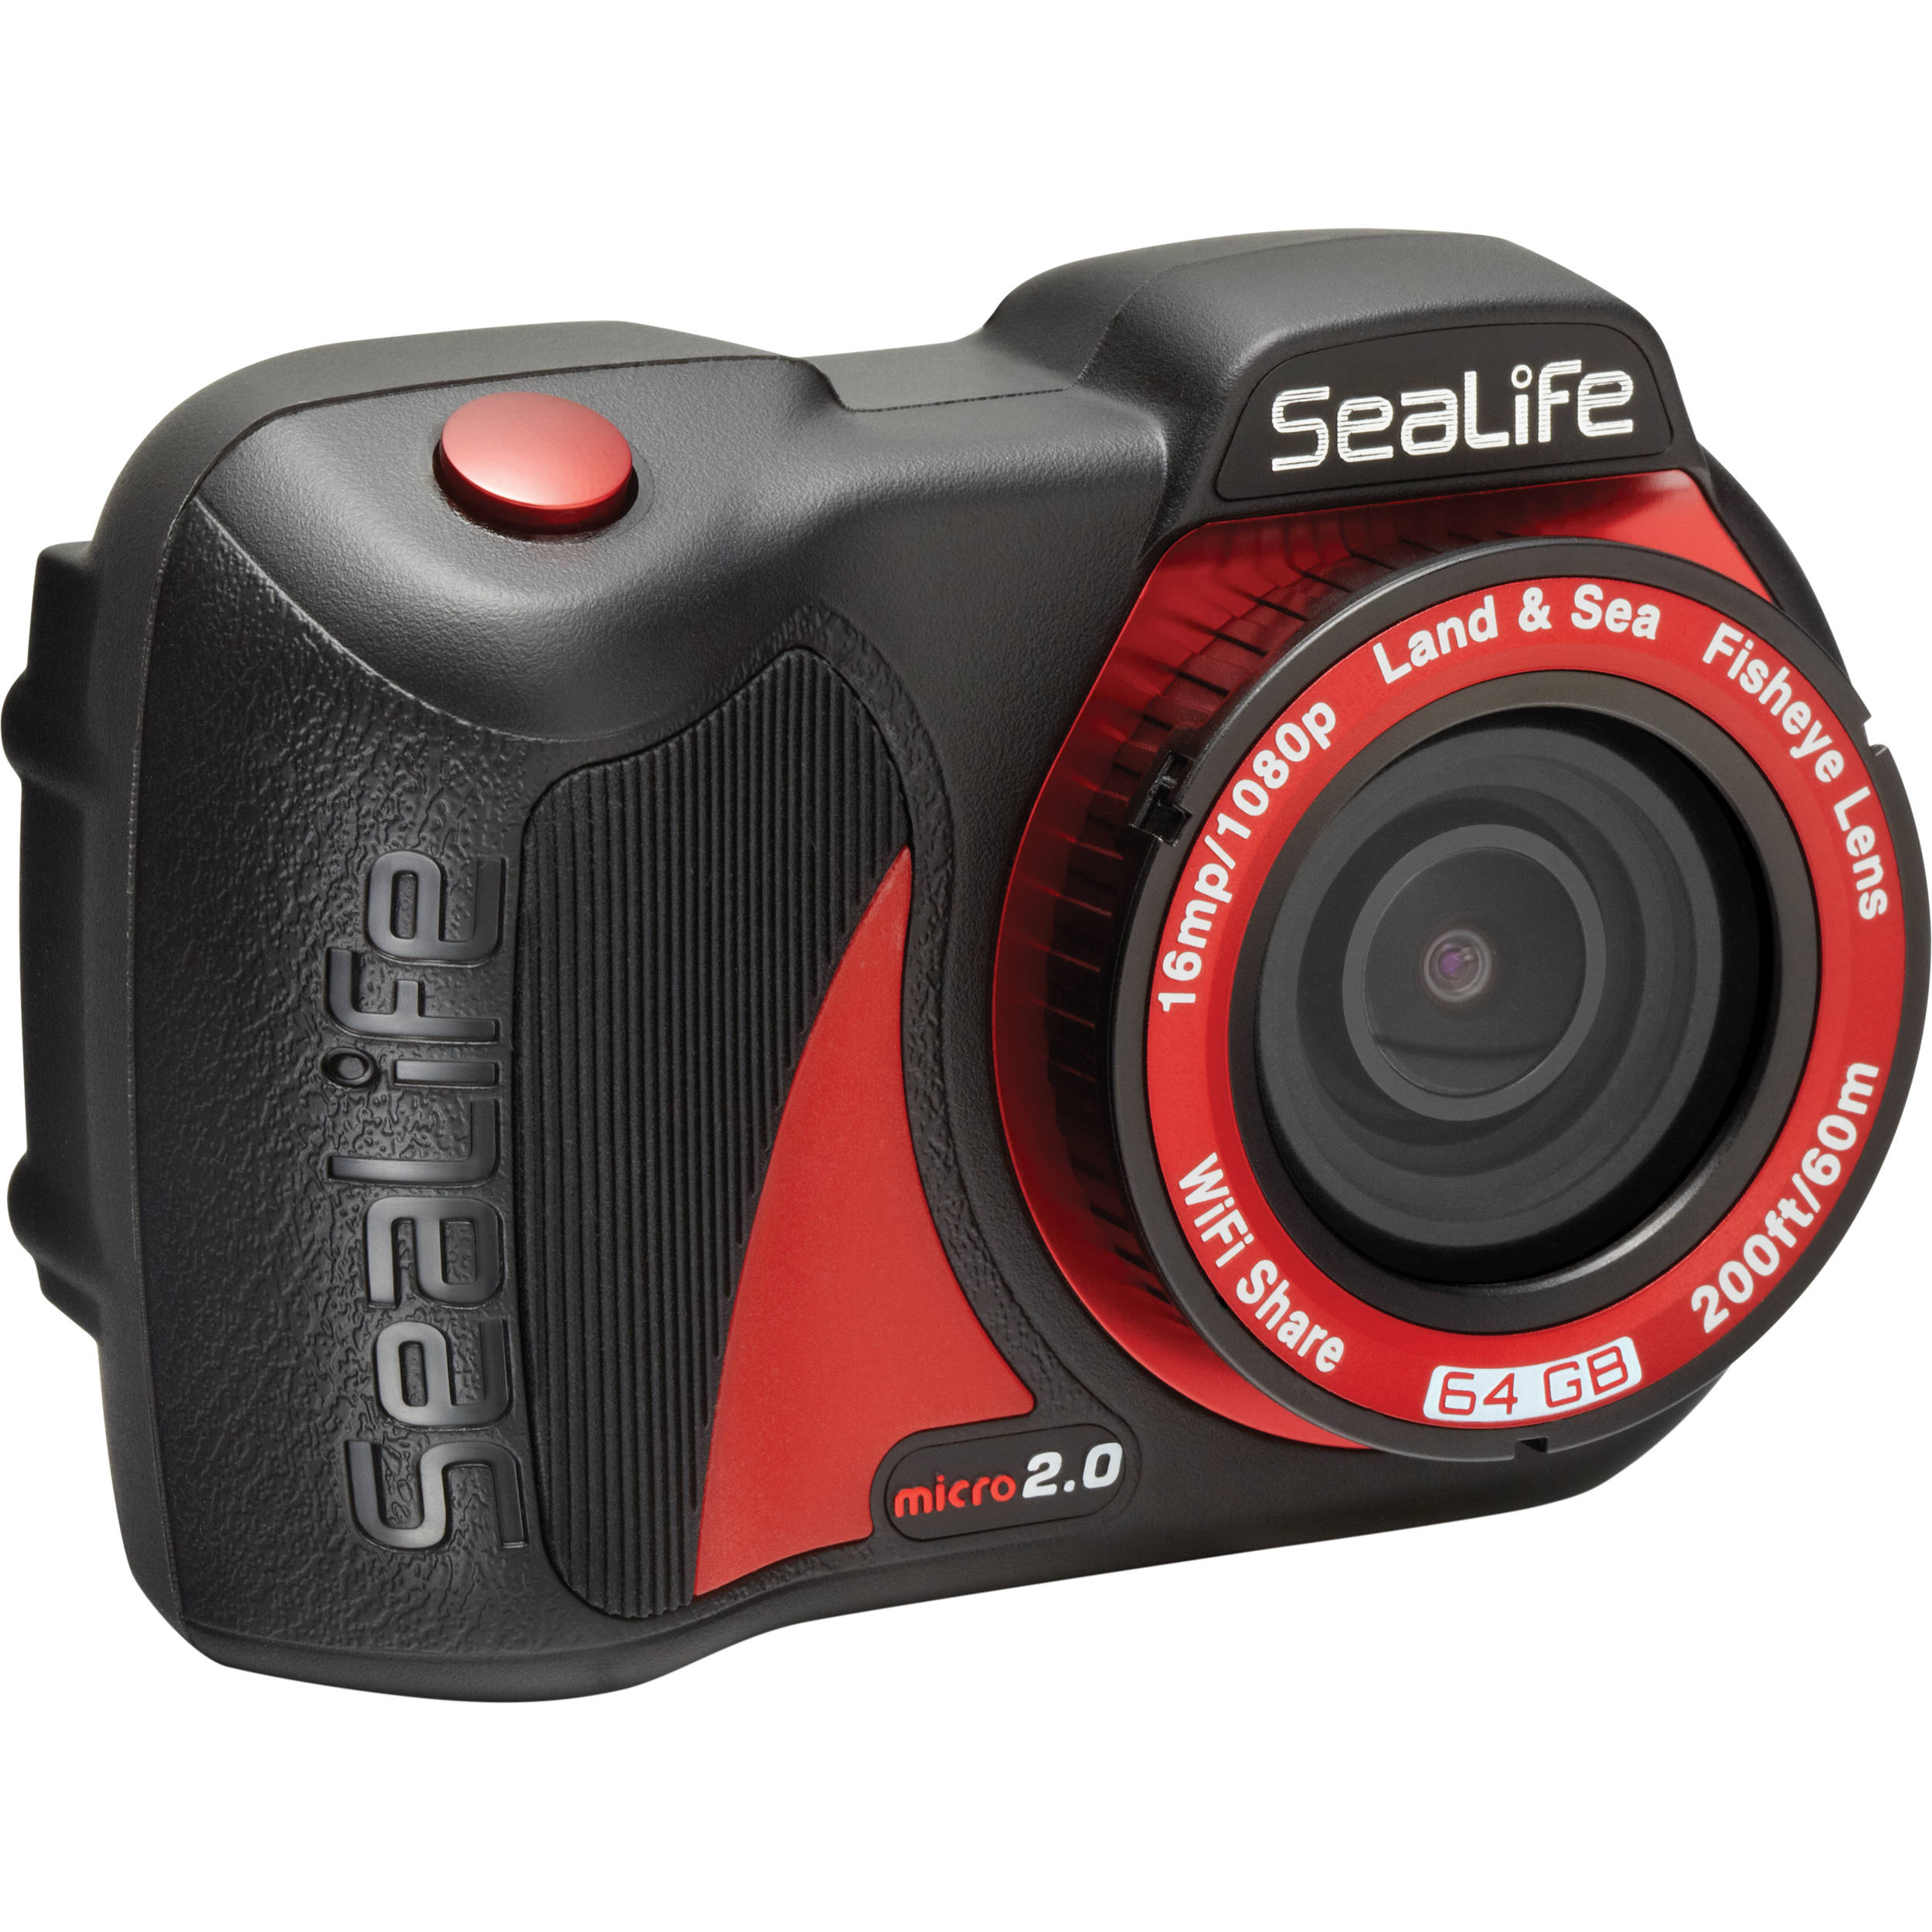 SeaLife Micro 2.0 Underwater Digital Camera (64GB) SL512 B&H